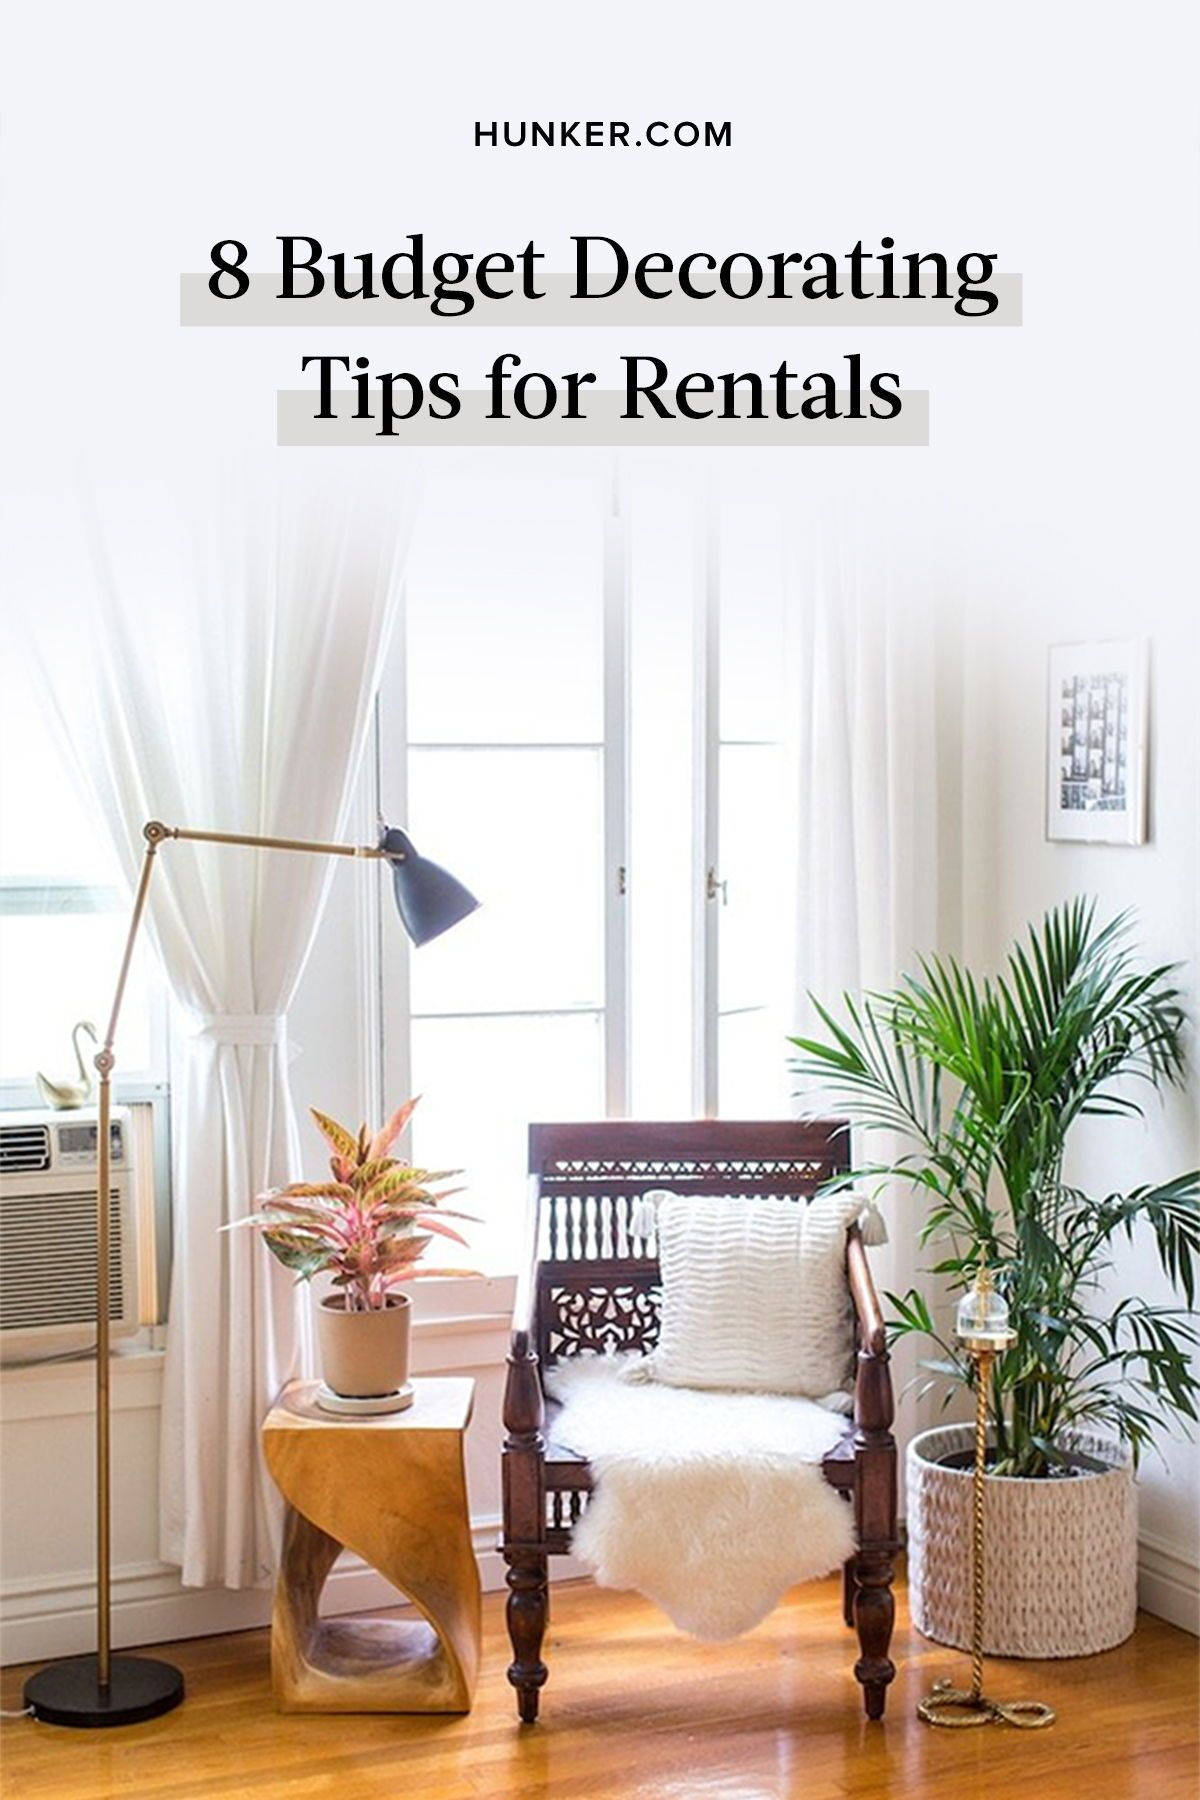 Here are eight creative, budget-friendly, and most importantly, transitory suggestions for decorating a space that you and your landlord will love. #hunkerhome #decor #homedecor #decorideas #budgetdecor #rentaldecor